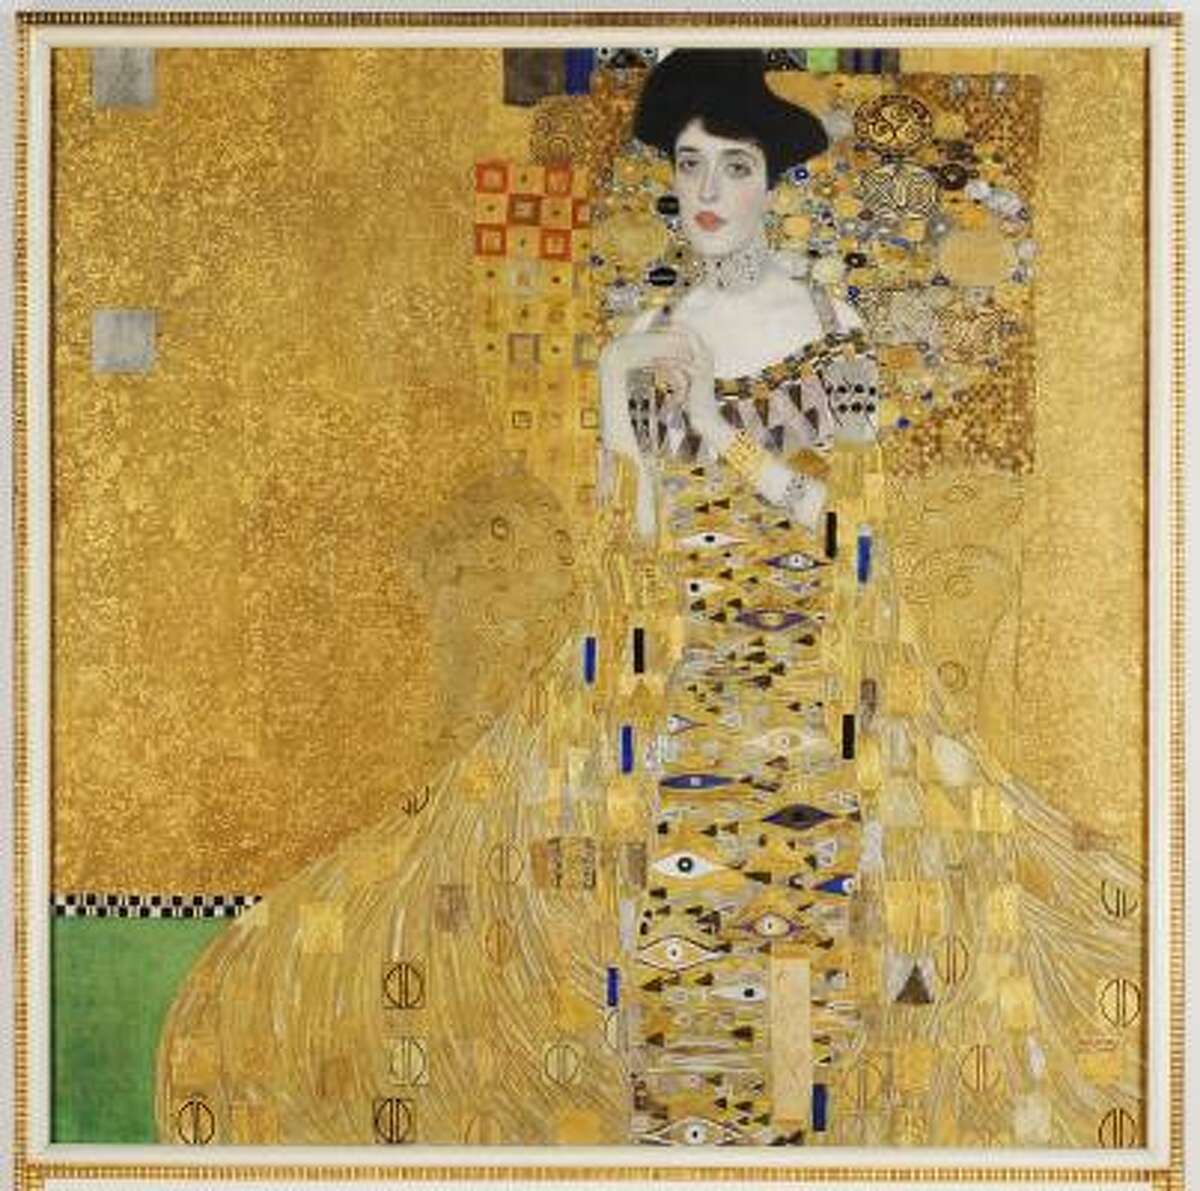 prized possession: Stolen by Nazis in 1938, this Gustav Klimt portrait of Adele Bloch-Bauer was recently returned to the heiress of Bloch-Bauer by the Austrian government. It later sold for $135 million.